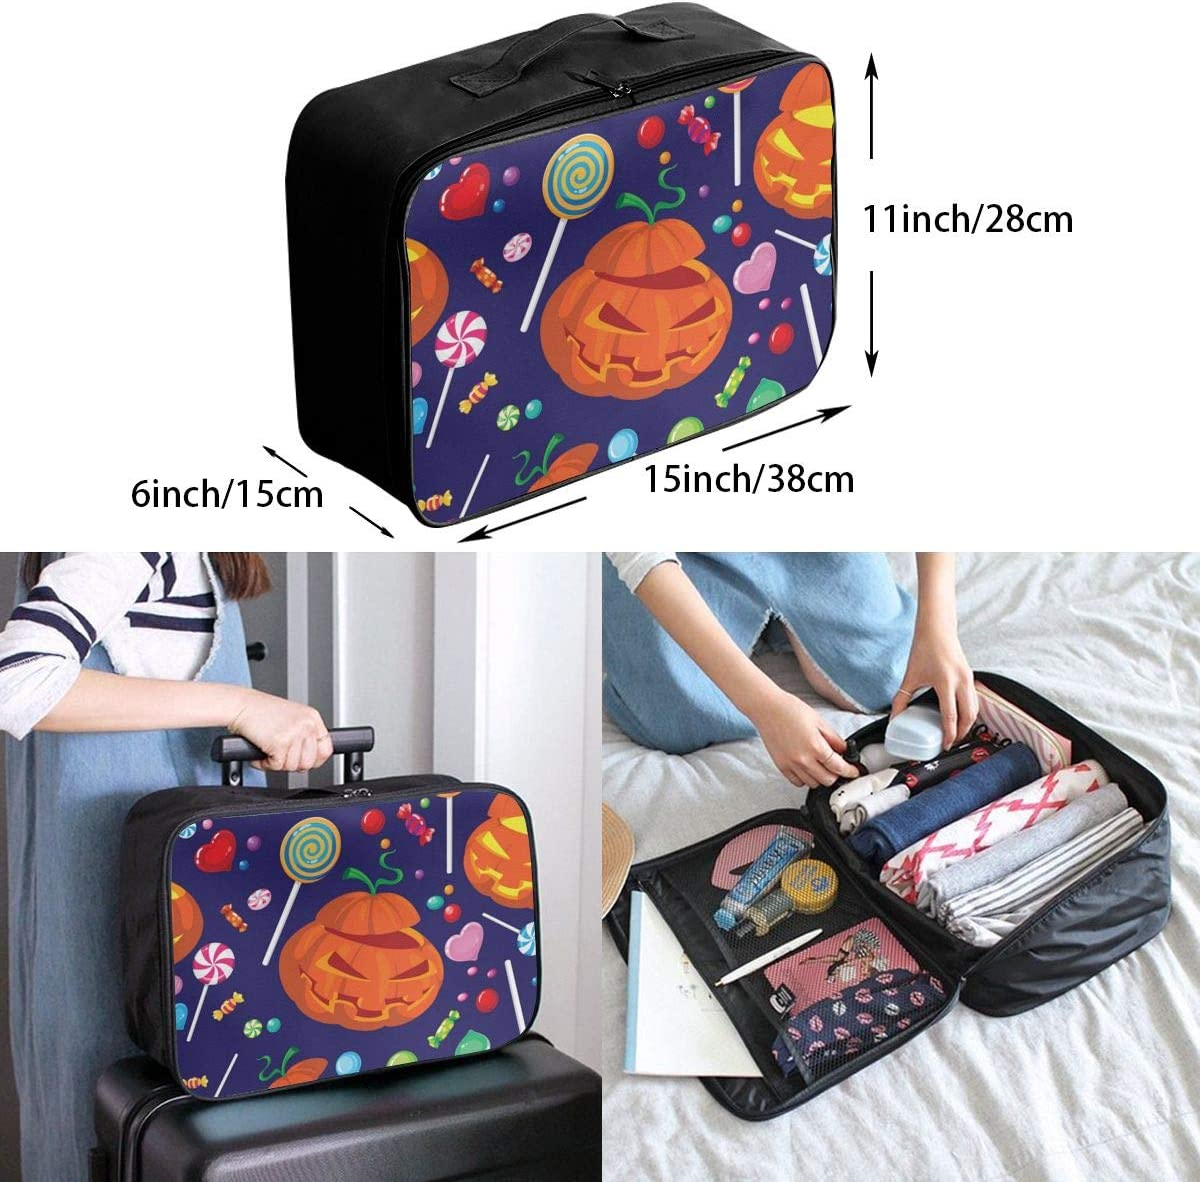 Yunshm Seamless Halloween Candy Vector Image Love Personalized Trolley Handbag Waterproof Unisex Large Capacity For Business Travel Storage